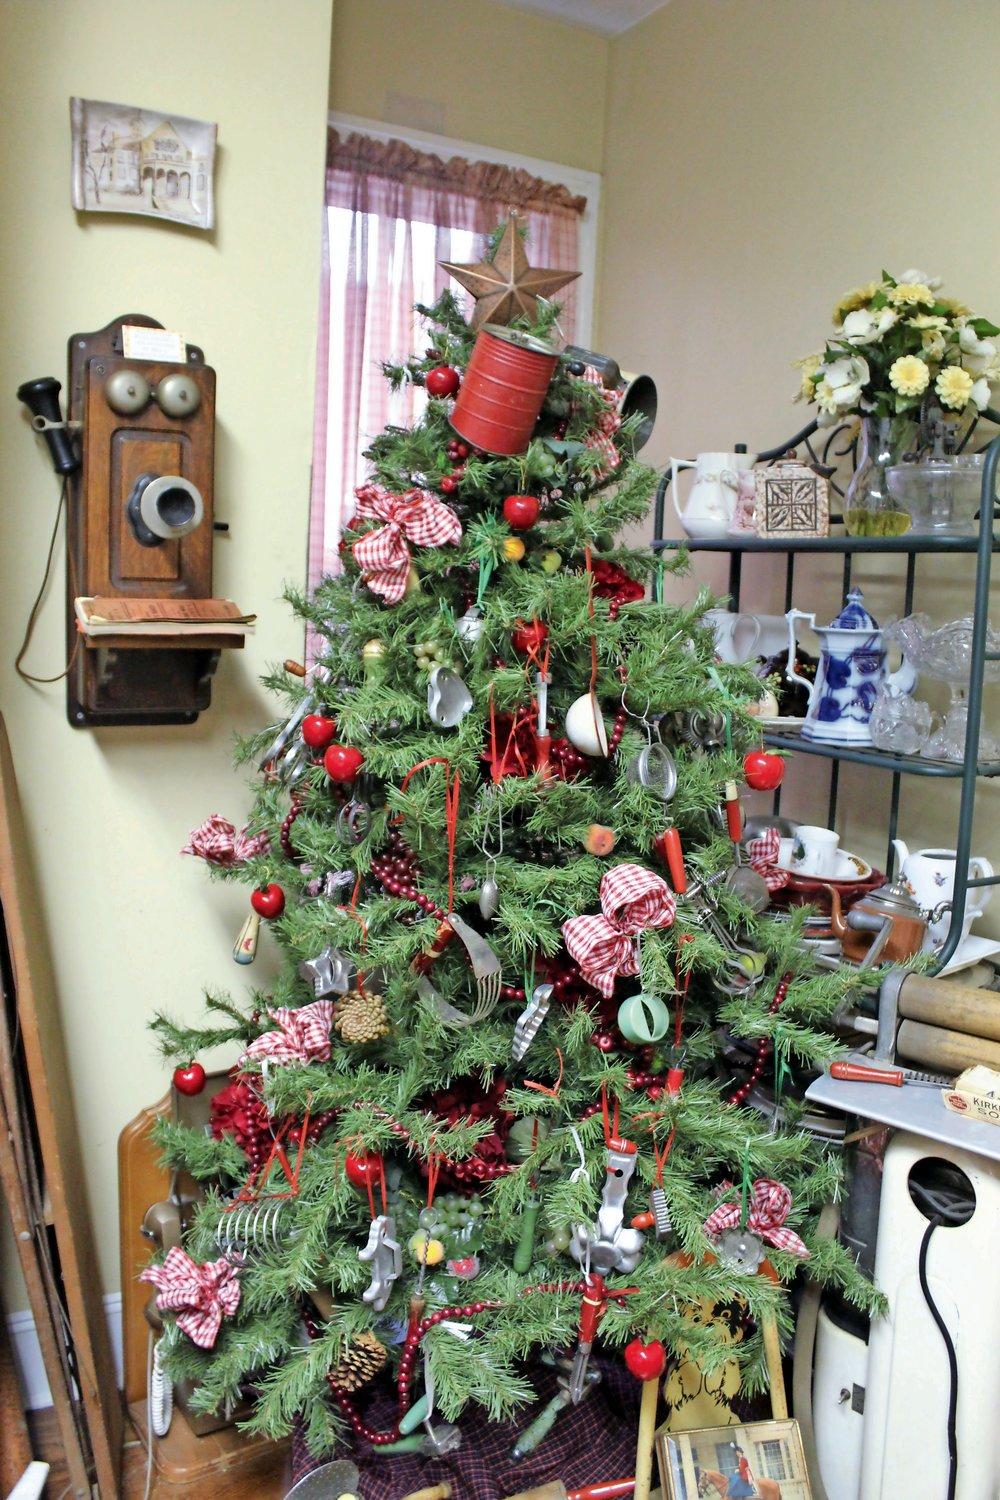 Oceanside 2021 Christmas Tree Removal Historic Holiday Decor In The Village Of Rockville Centre Herald Community Newspapers Www Liherald Com